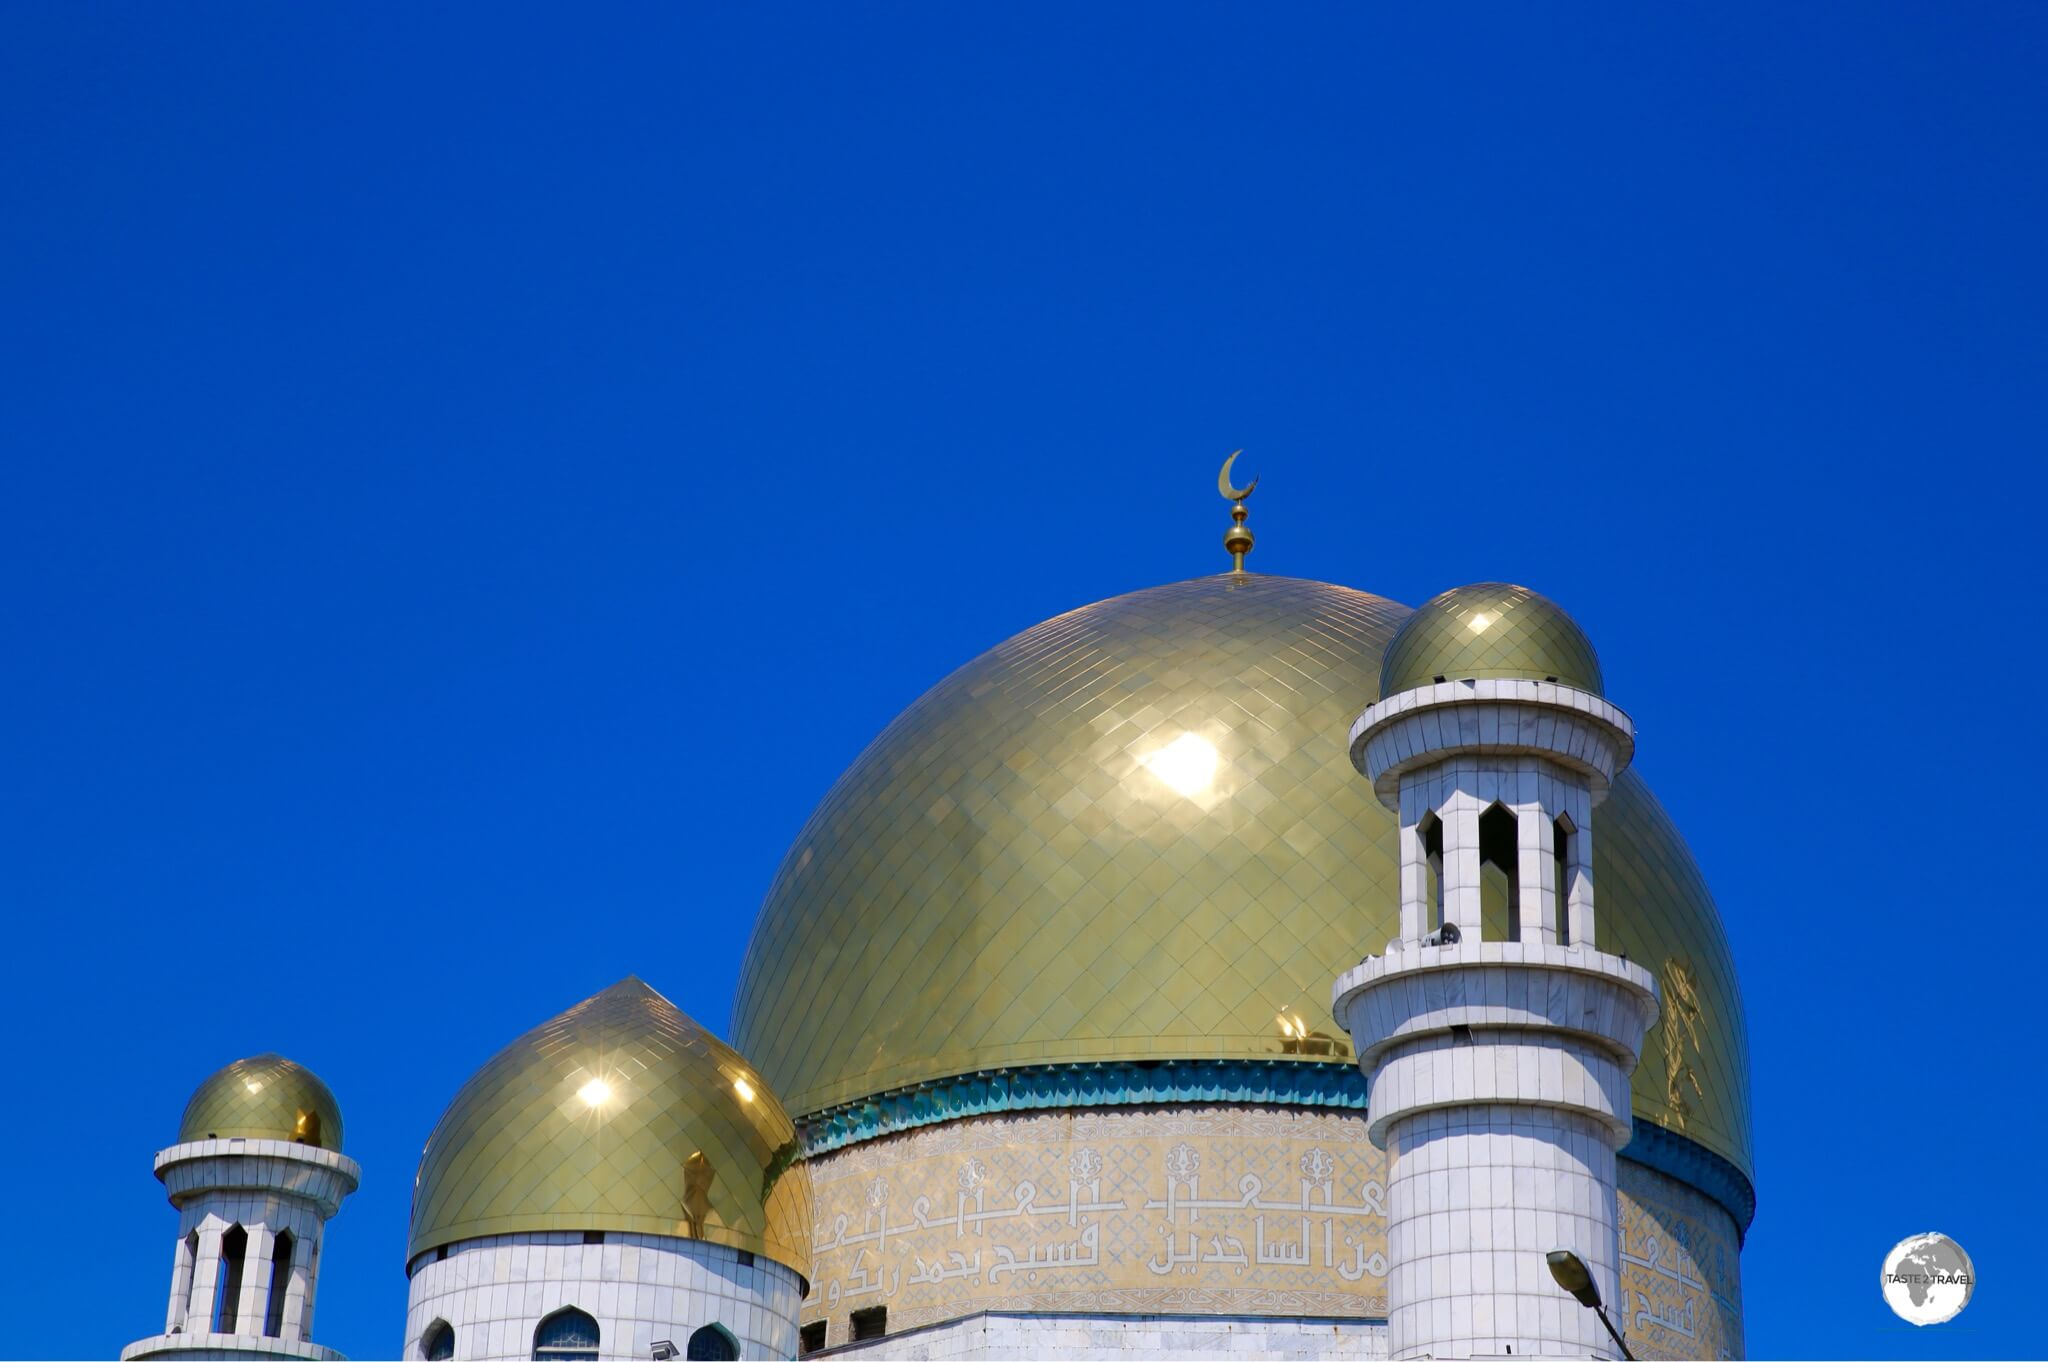 The large gold dome of the Almaty Central Mosque is decorated with verses from the Quran.